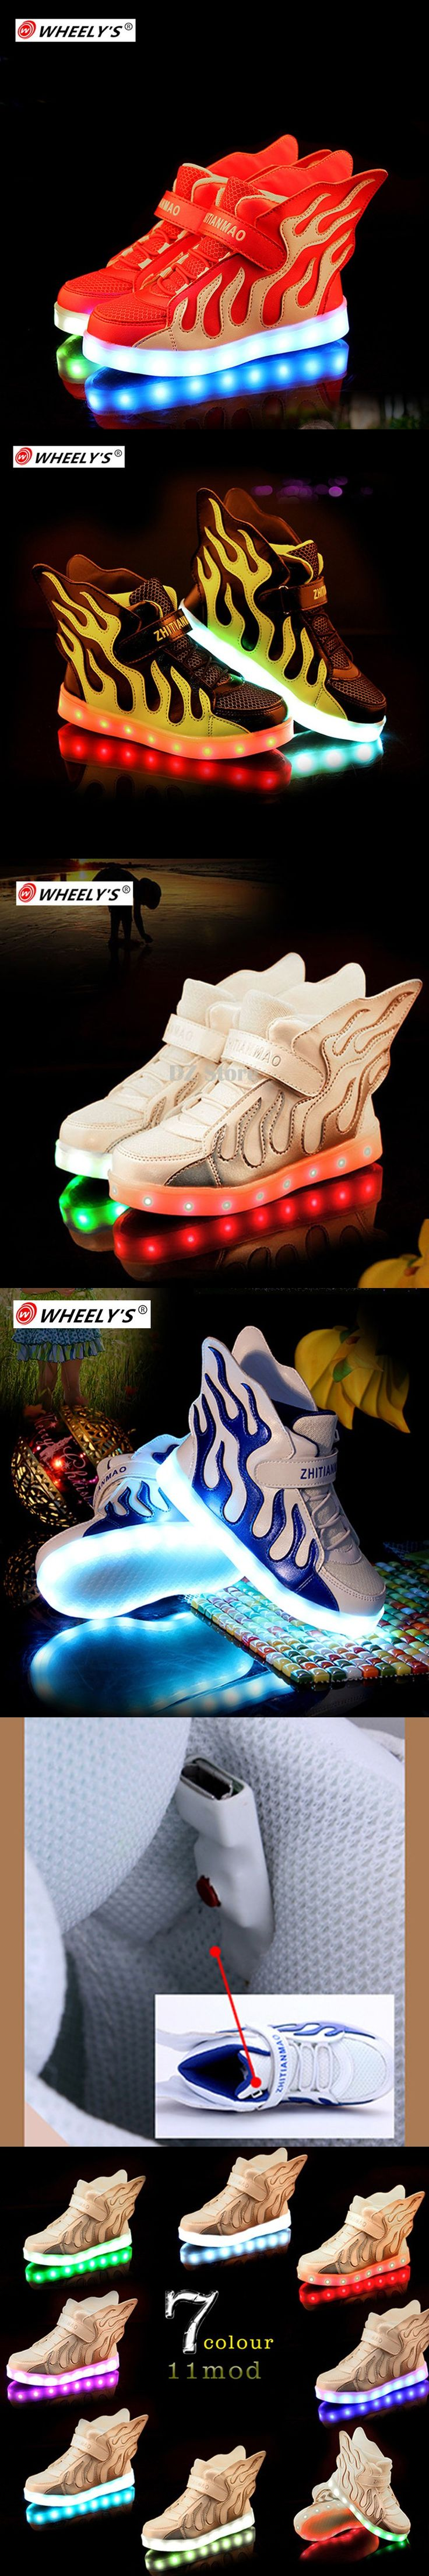 Kids Shoes with LED Lights Children Heelys Kids Sneakers with Wing Boys Girls Led Light Up Shoes chaussure enfant Tenis Infantil